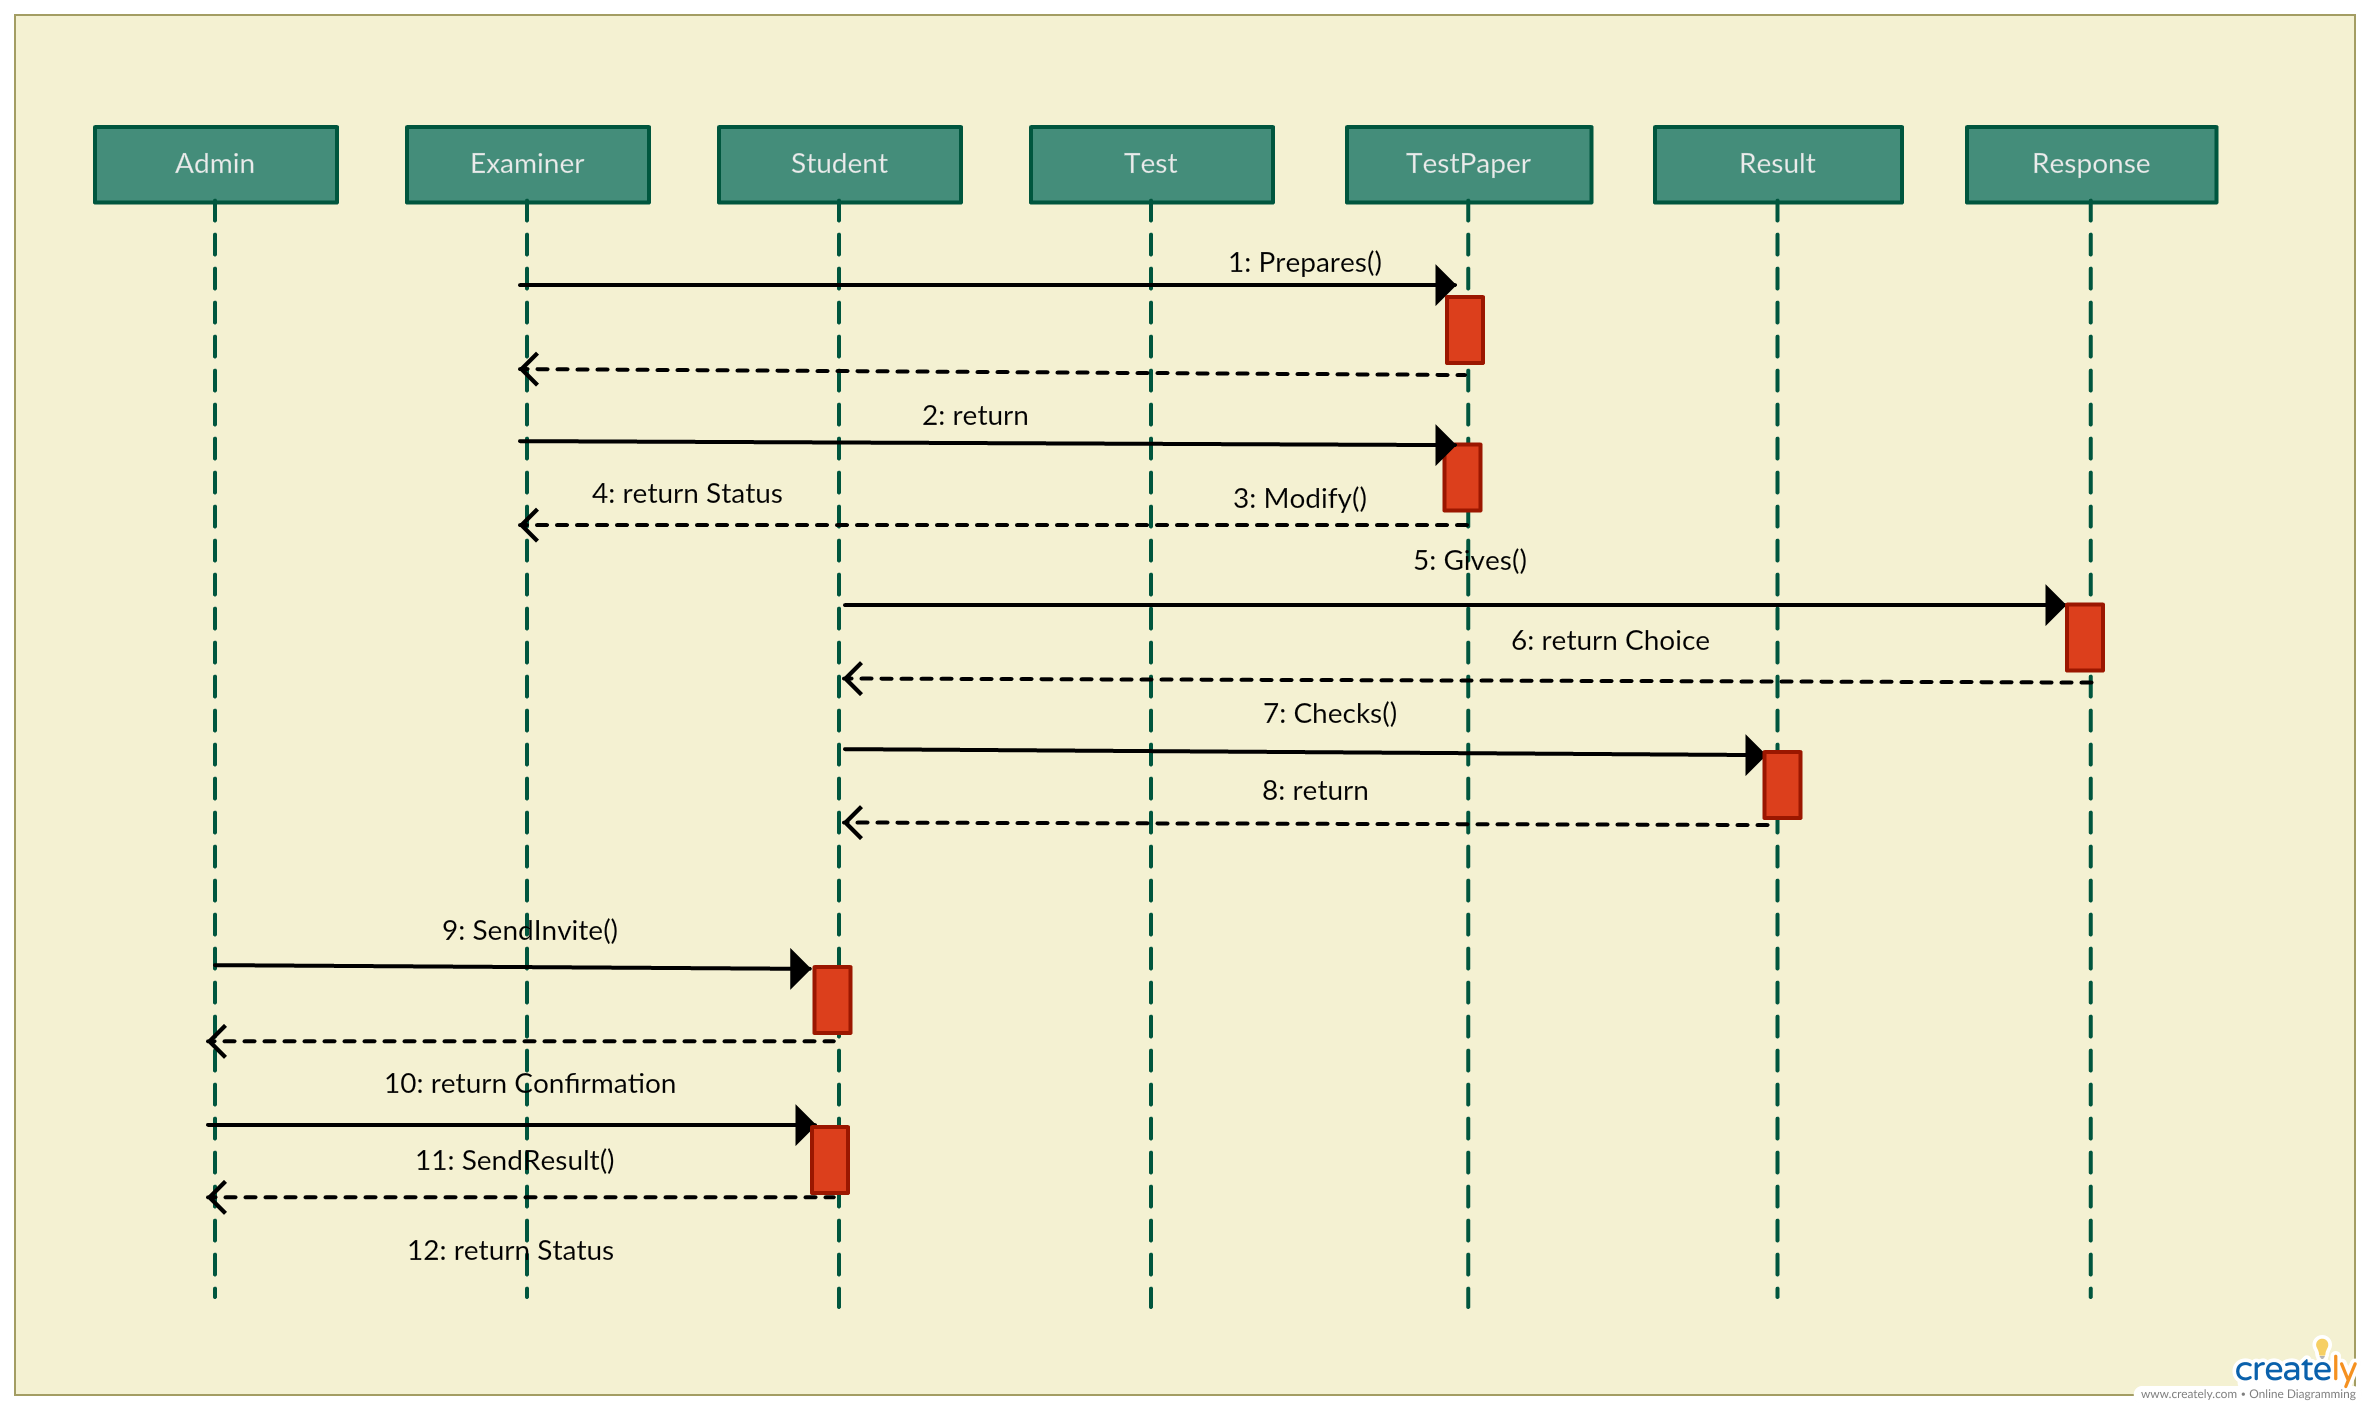 online examination sequence diagram template click the image to get all the important aspects [ 2370 x 1410 Pixel ]